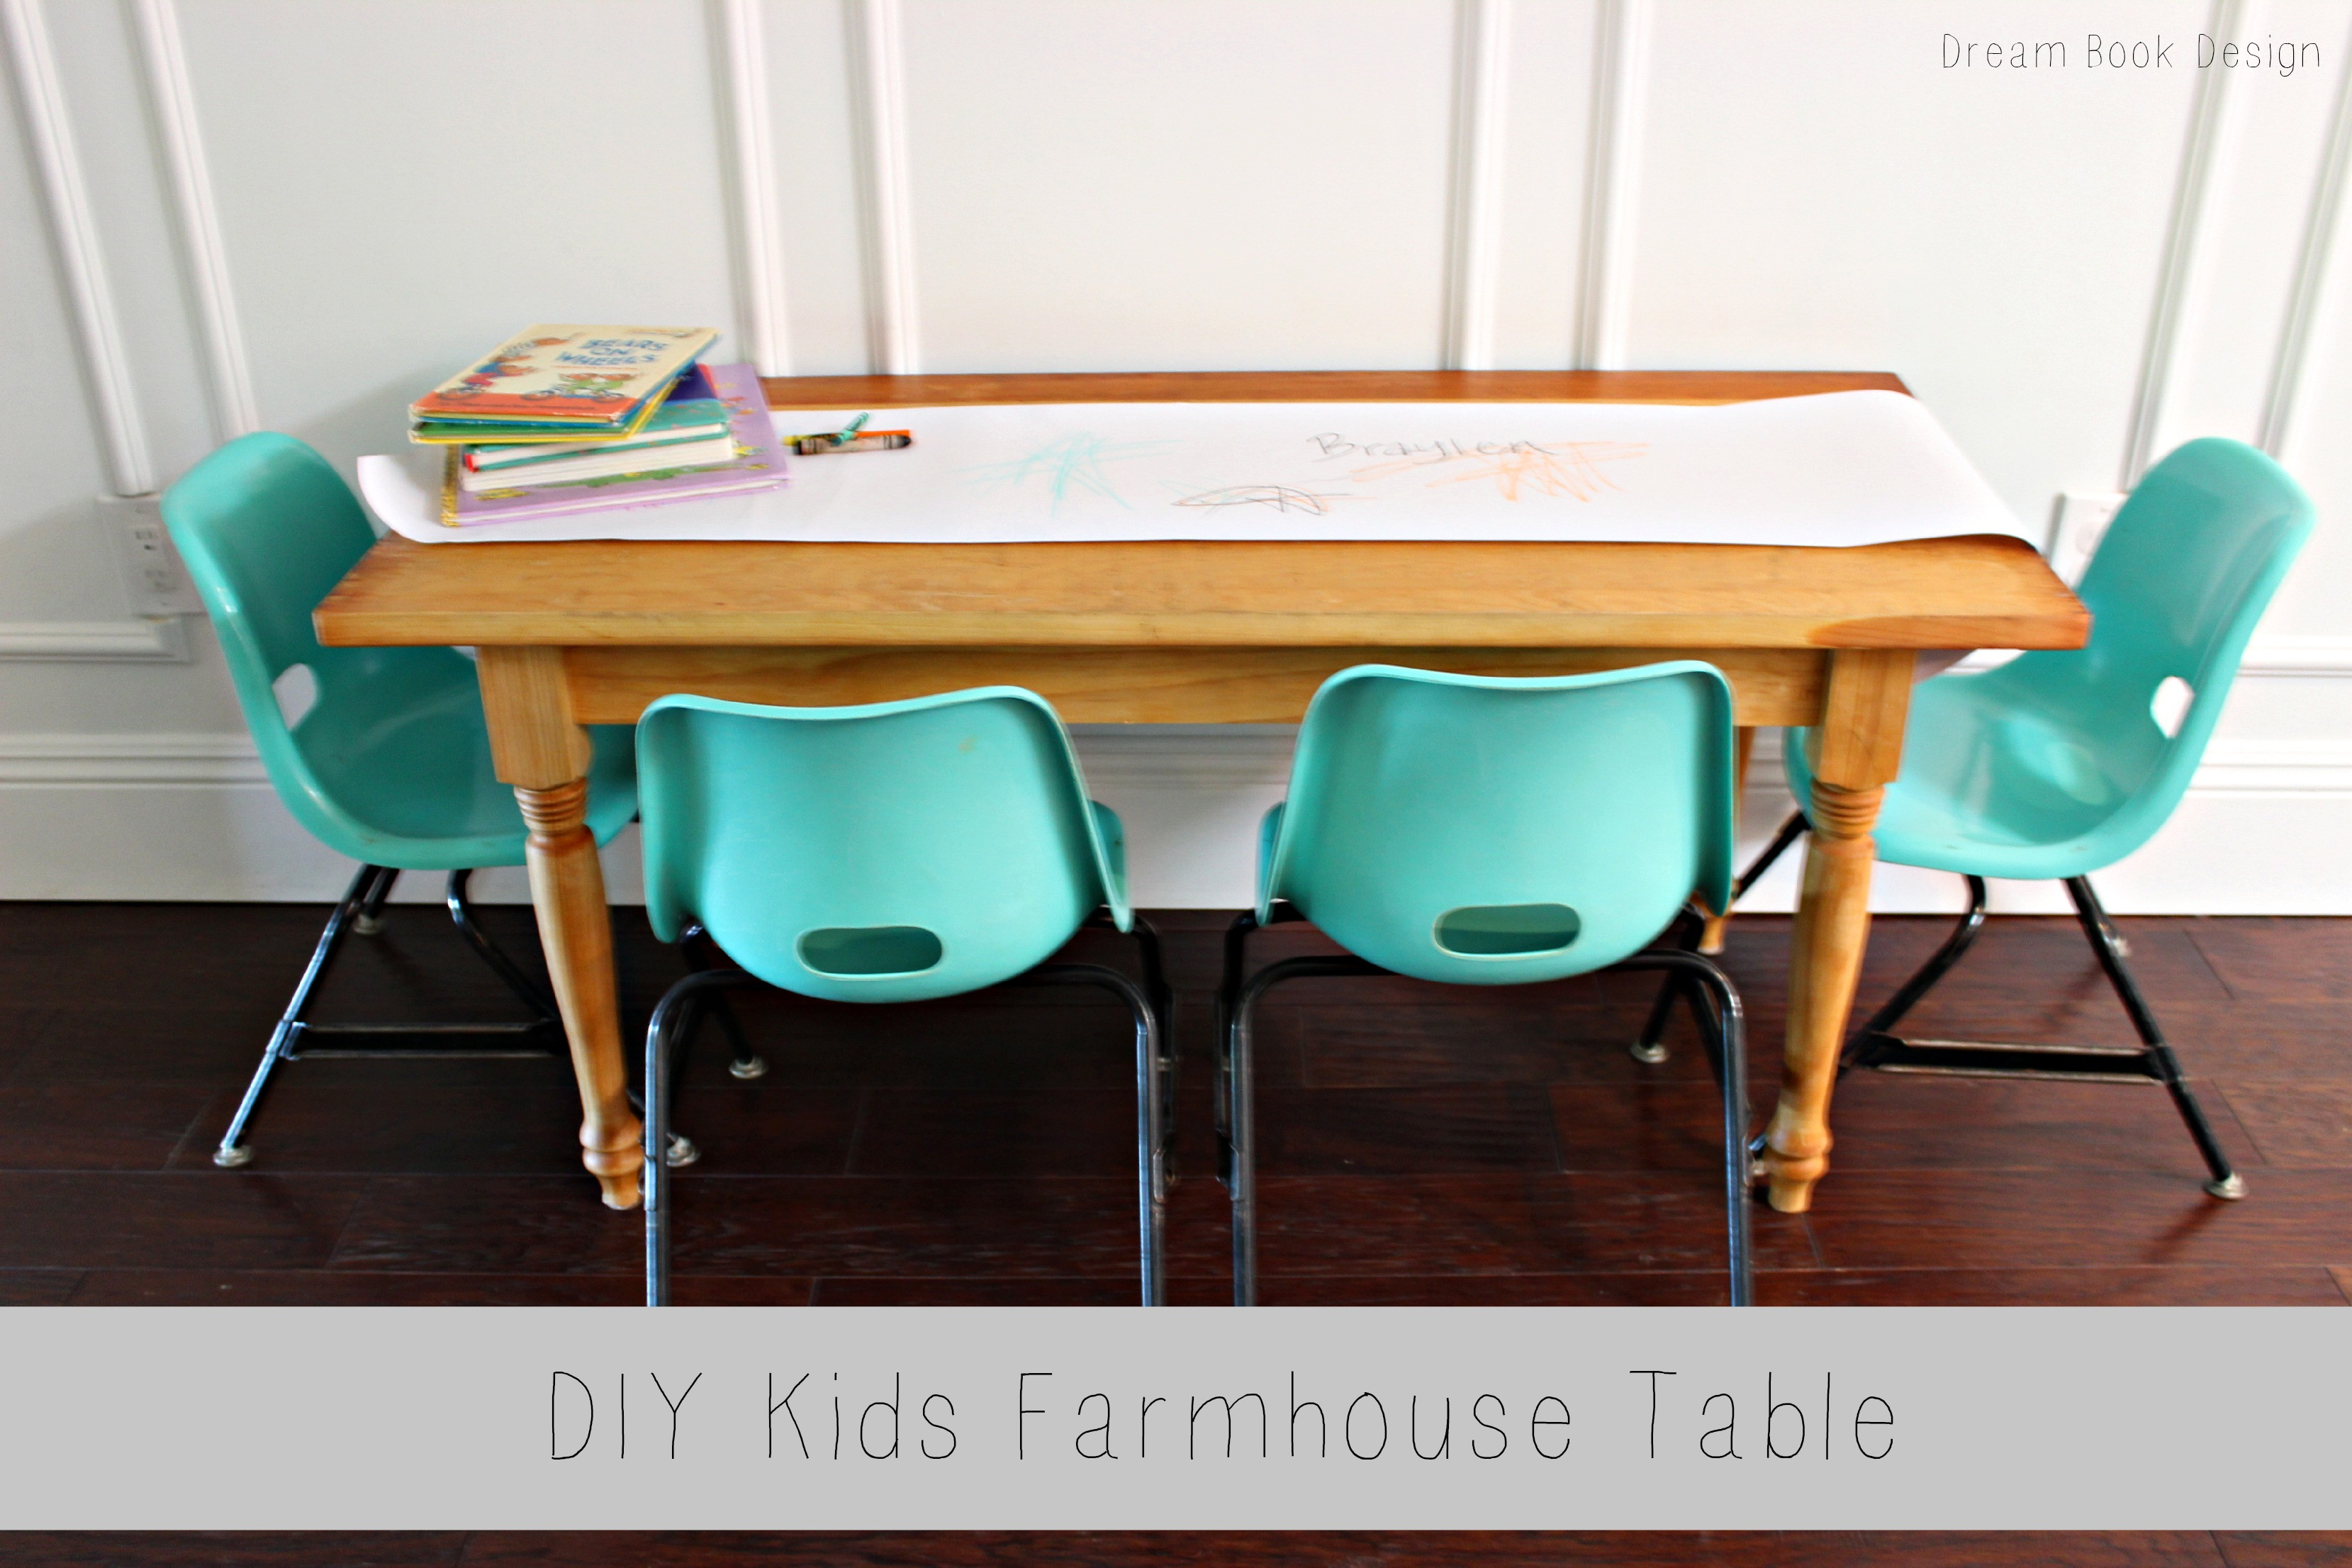 Best ideas about DIY Kids Table . Save or Pin DIY Kids Farmhouse Table Dream Book Design Now.